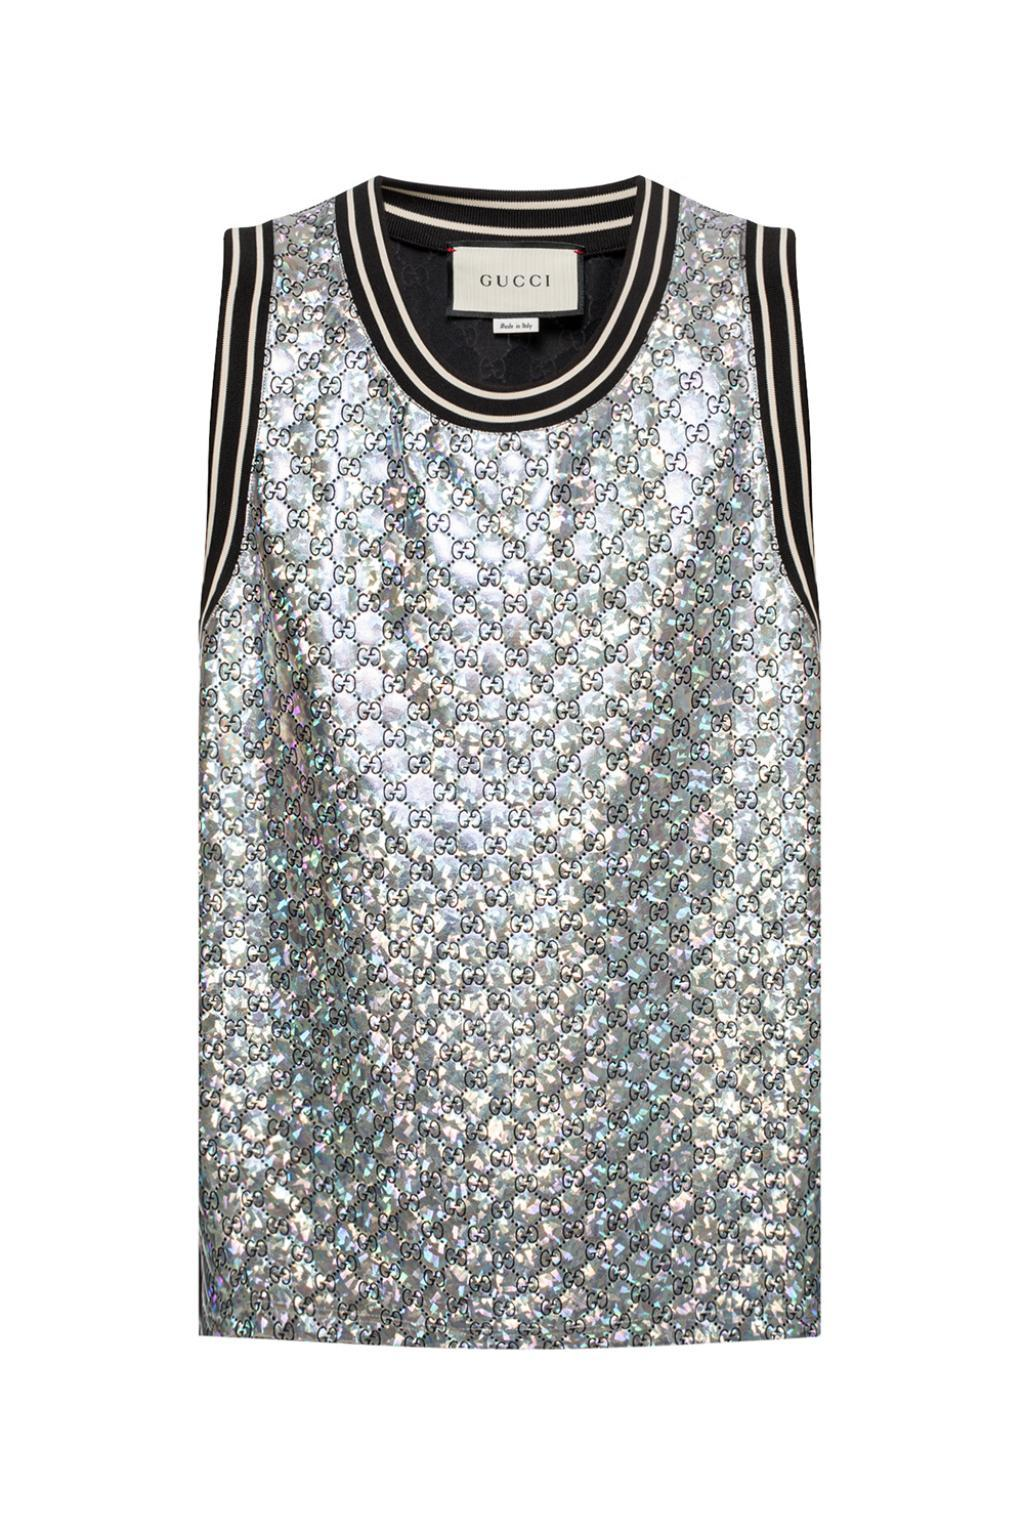 492515d5 Gucci Quilted GG Tank-top in Metallic for Men - Save 38% - Lyst